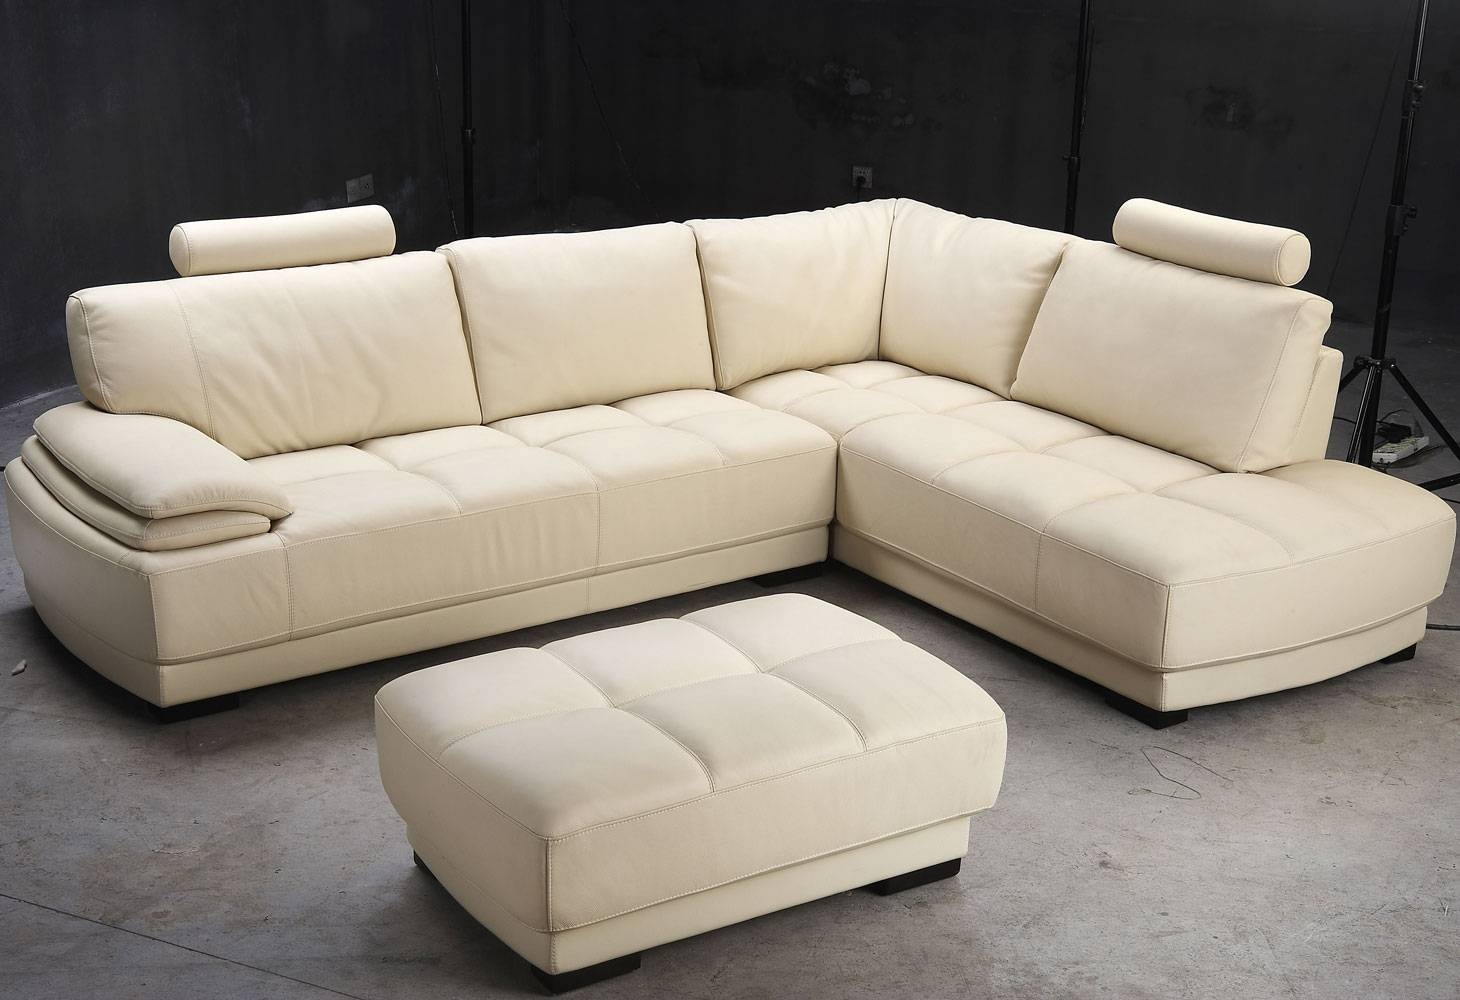 White Ivory Leather L Shaped Sectional Sofa With Chaise Of pertaining to L Shaped Sectional Sleeper Sofa (Image 24 of 25)